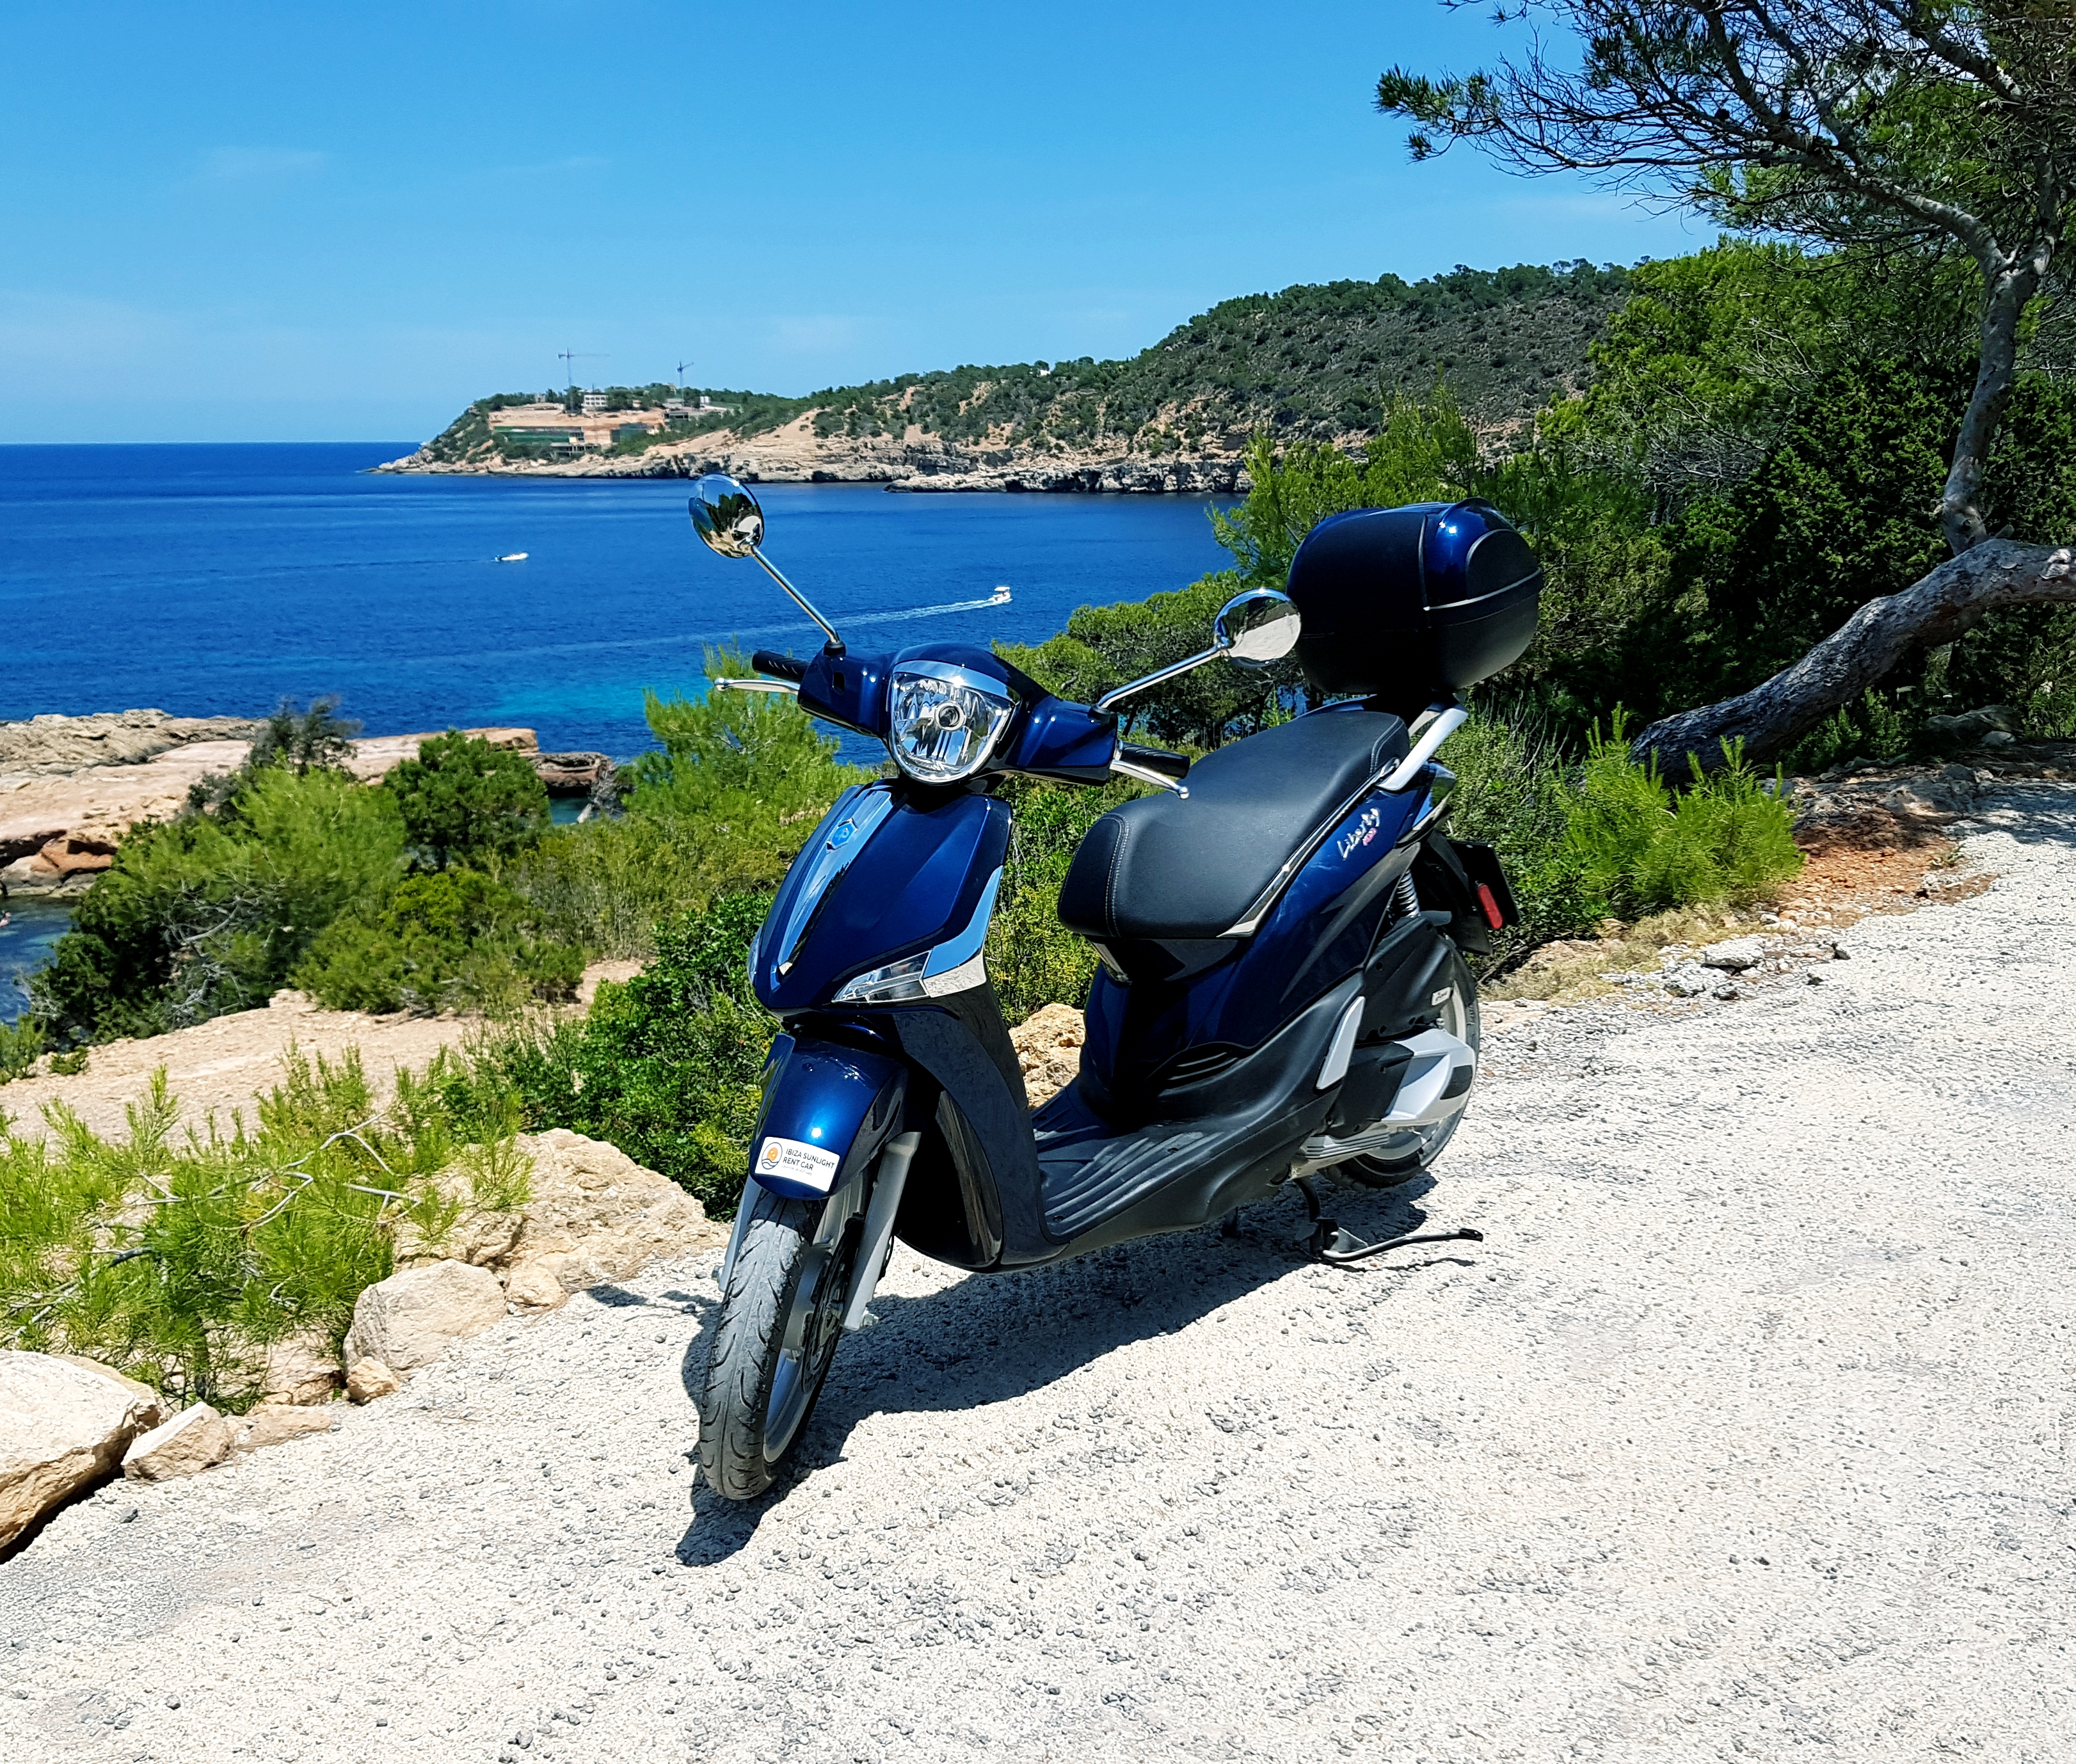 Turbo Scooter Rental Ibiza: Scooter 125 Cm3